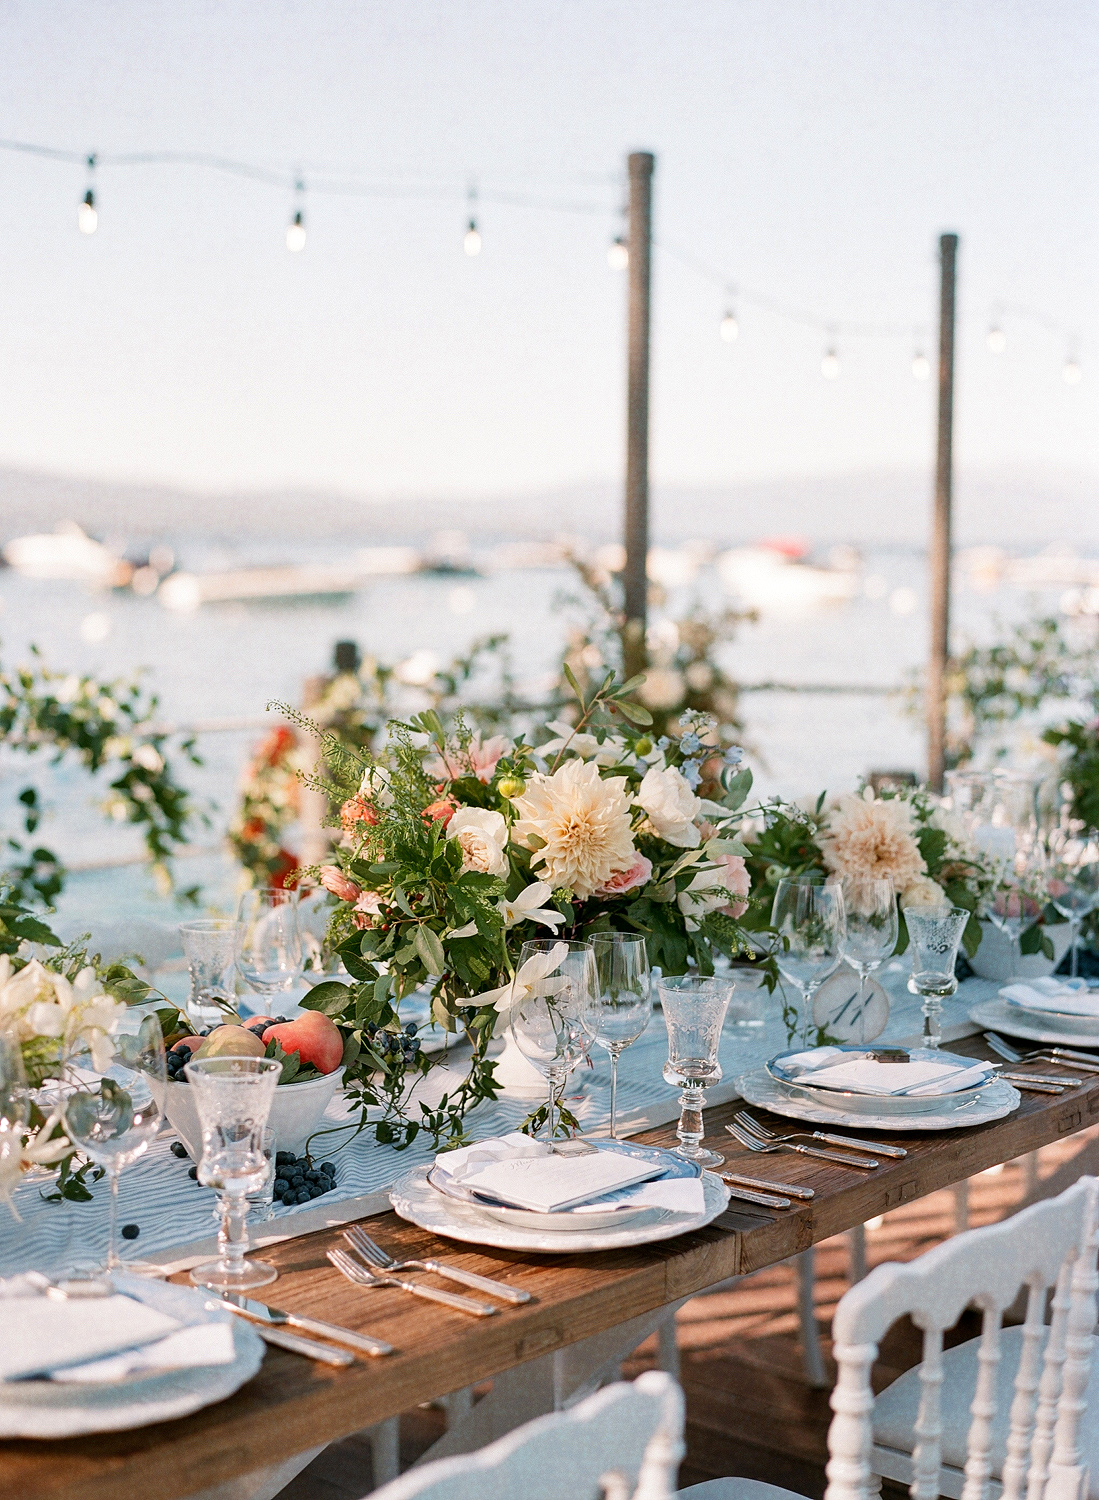 Natalie and Grant wedding outdoor tablescape and centerpieces